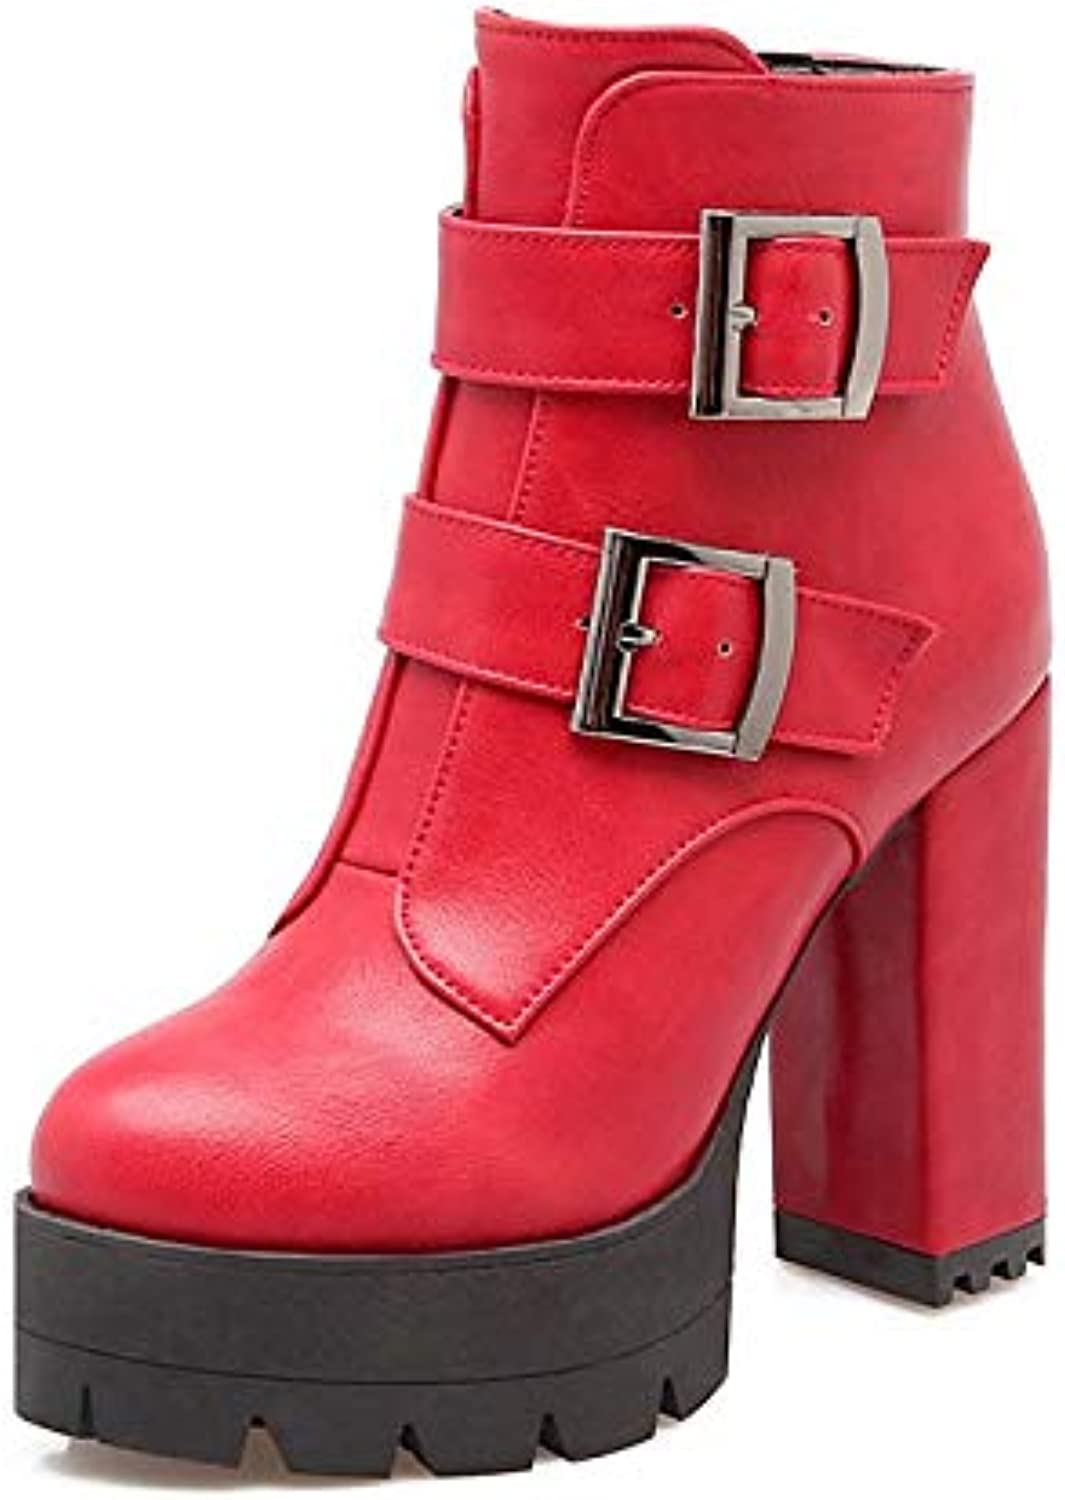 Donna Combat Boots PU (Poliuretano) Fall -* Inverno Boots Chunky Heel round Toe Booties /Ankle Boots Buckle Black /G  / Red